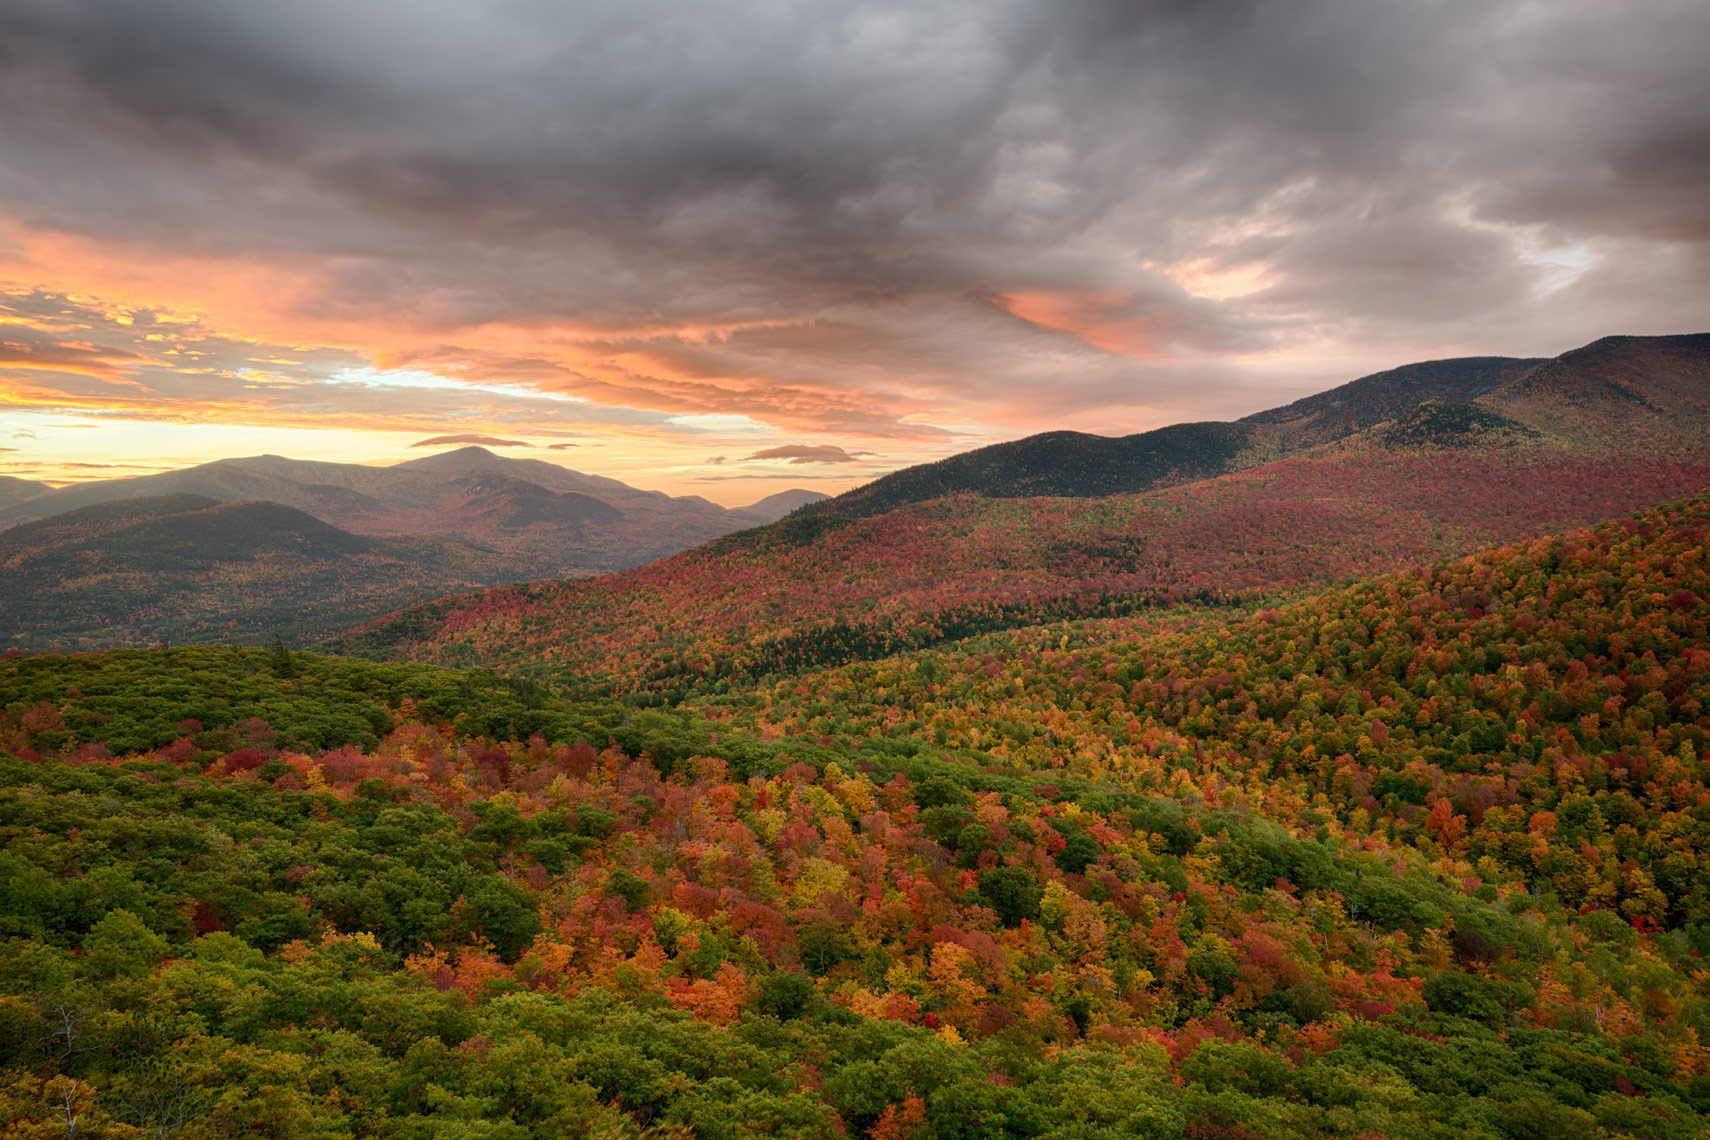 Autumn Morning on Owls Head, Adirondack Mountains, New York State